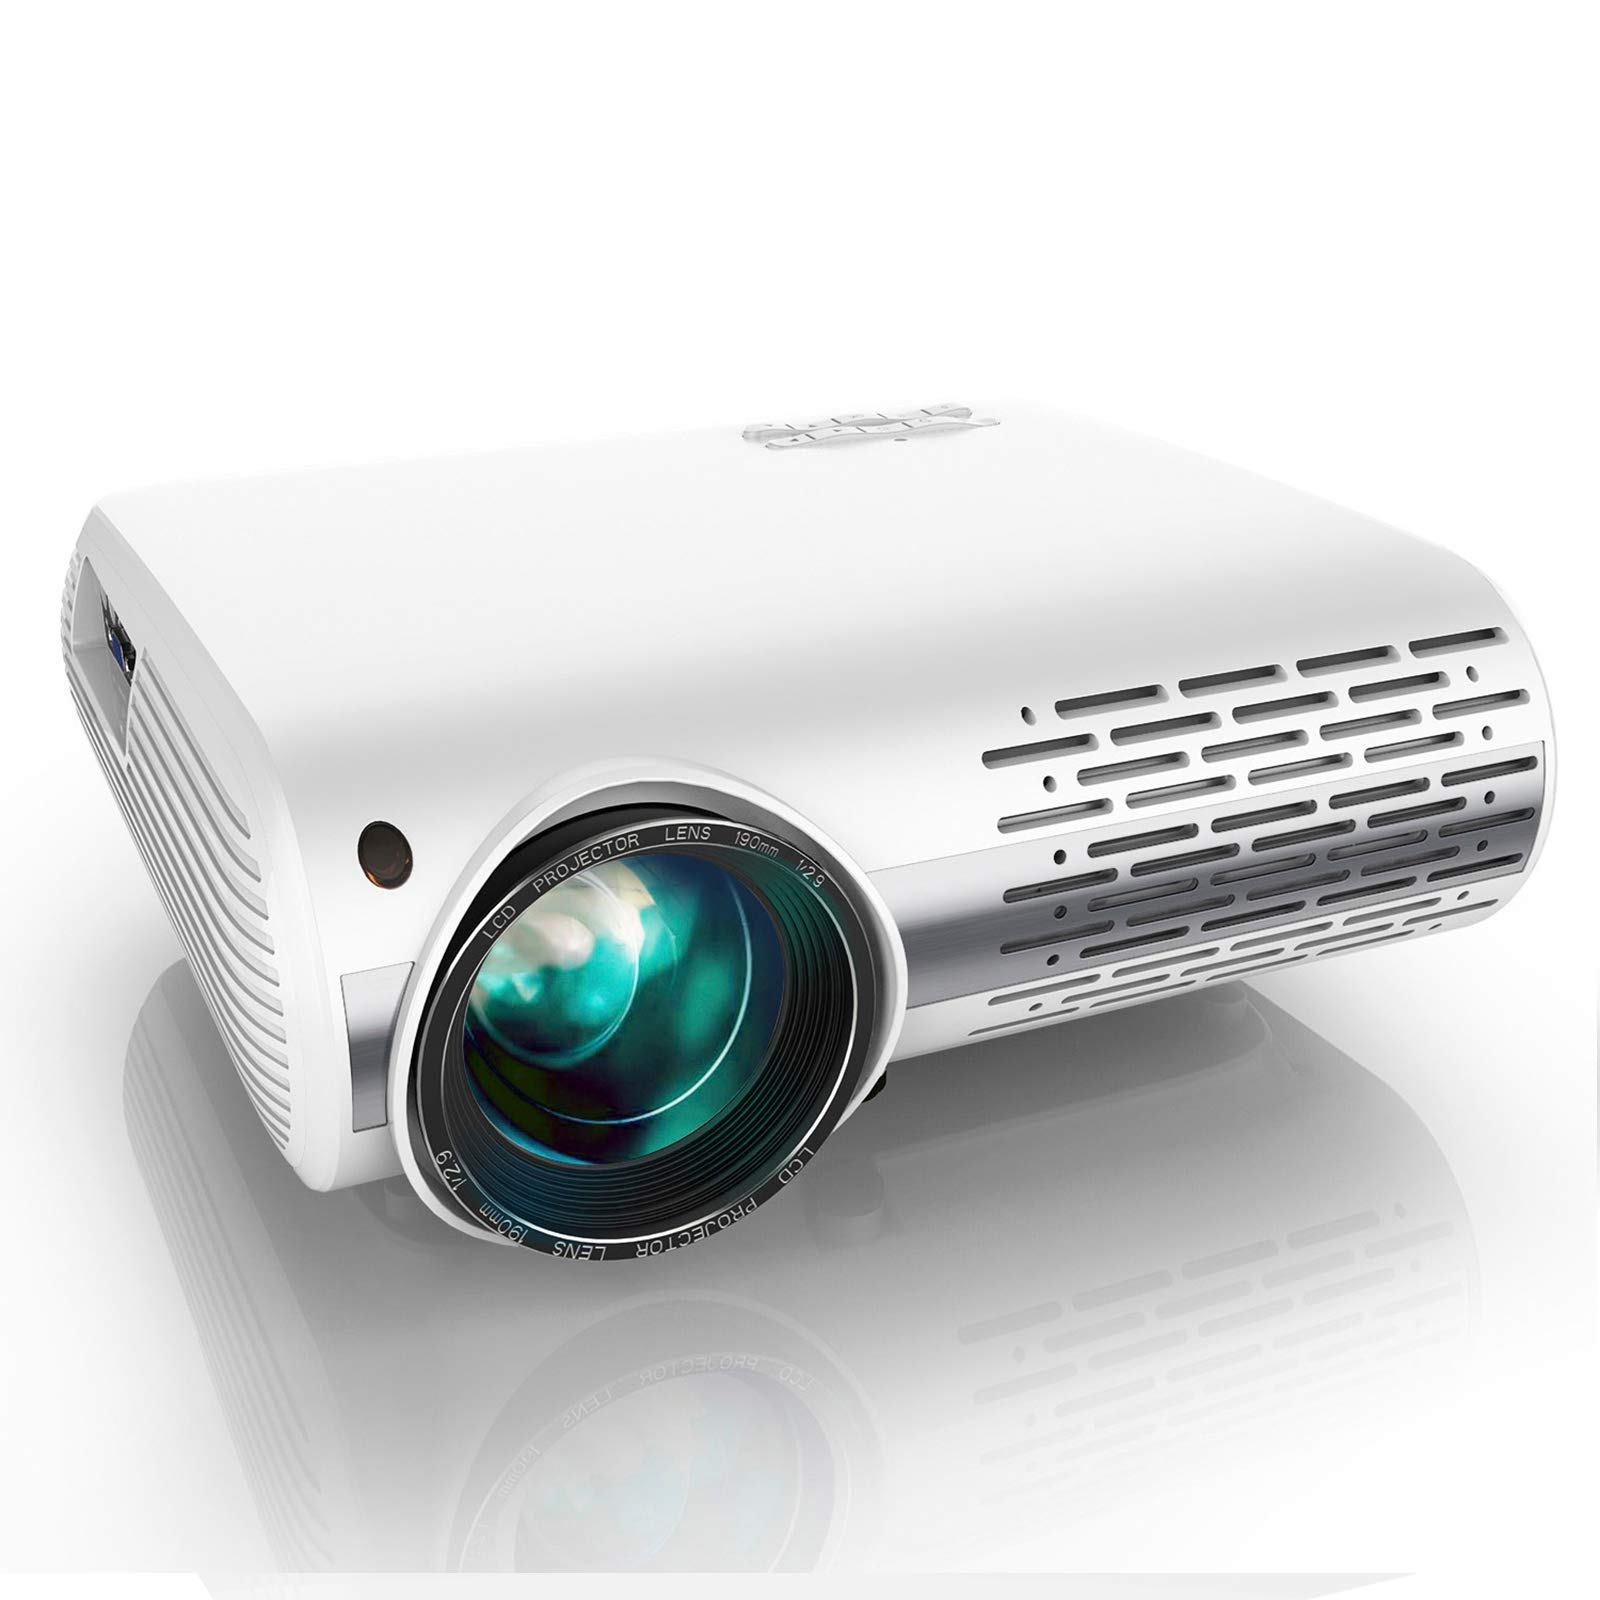 YABER Y30 Native 1080P Projector 7500L Full HD Video Projector 1920 x 1080, ±50° 4D Keystone Correction Support 4k & Zoom,LCD LED Home Theater Projector Compatible with Phone,PC,TV Box,PS4 (White)